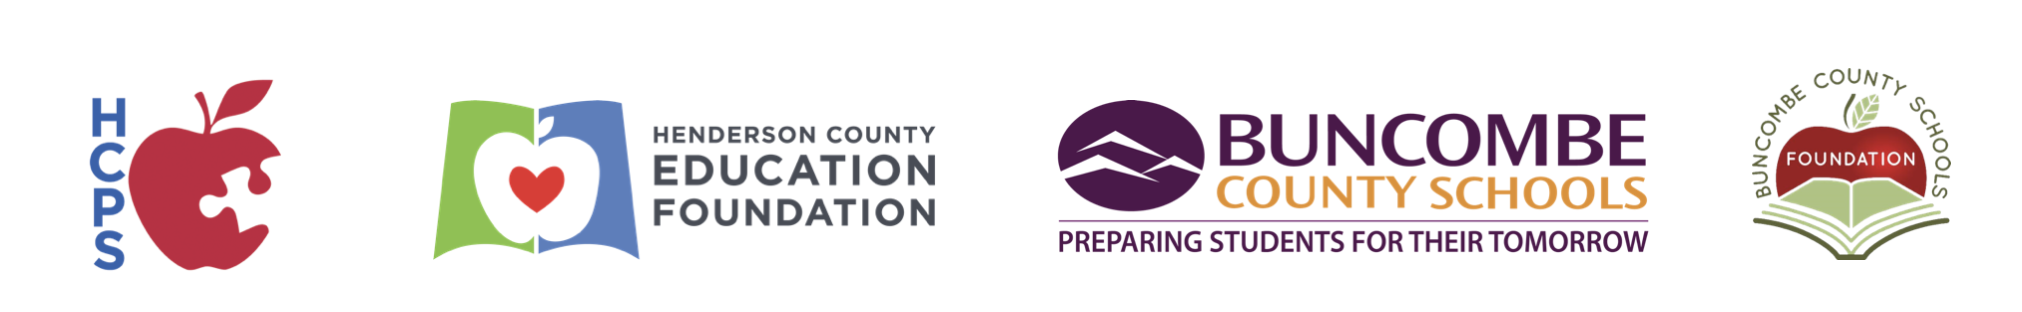 Logos for HCPS, Henderson County Education Foundation, Buncombe County Schools, and BCS Foundation